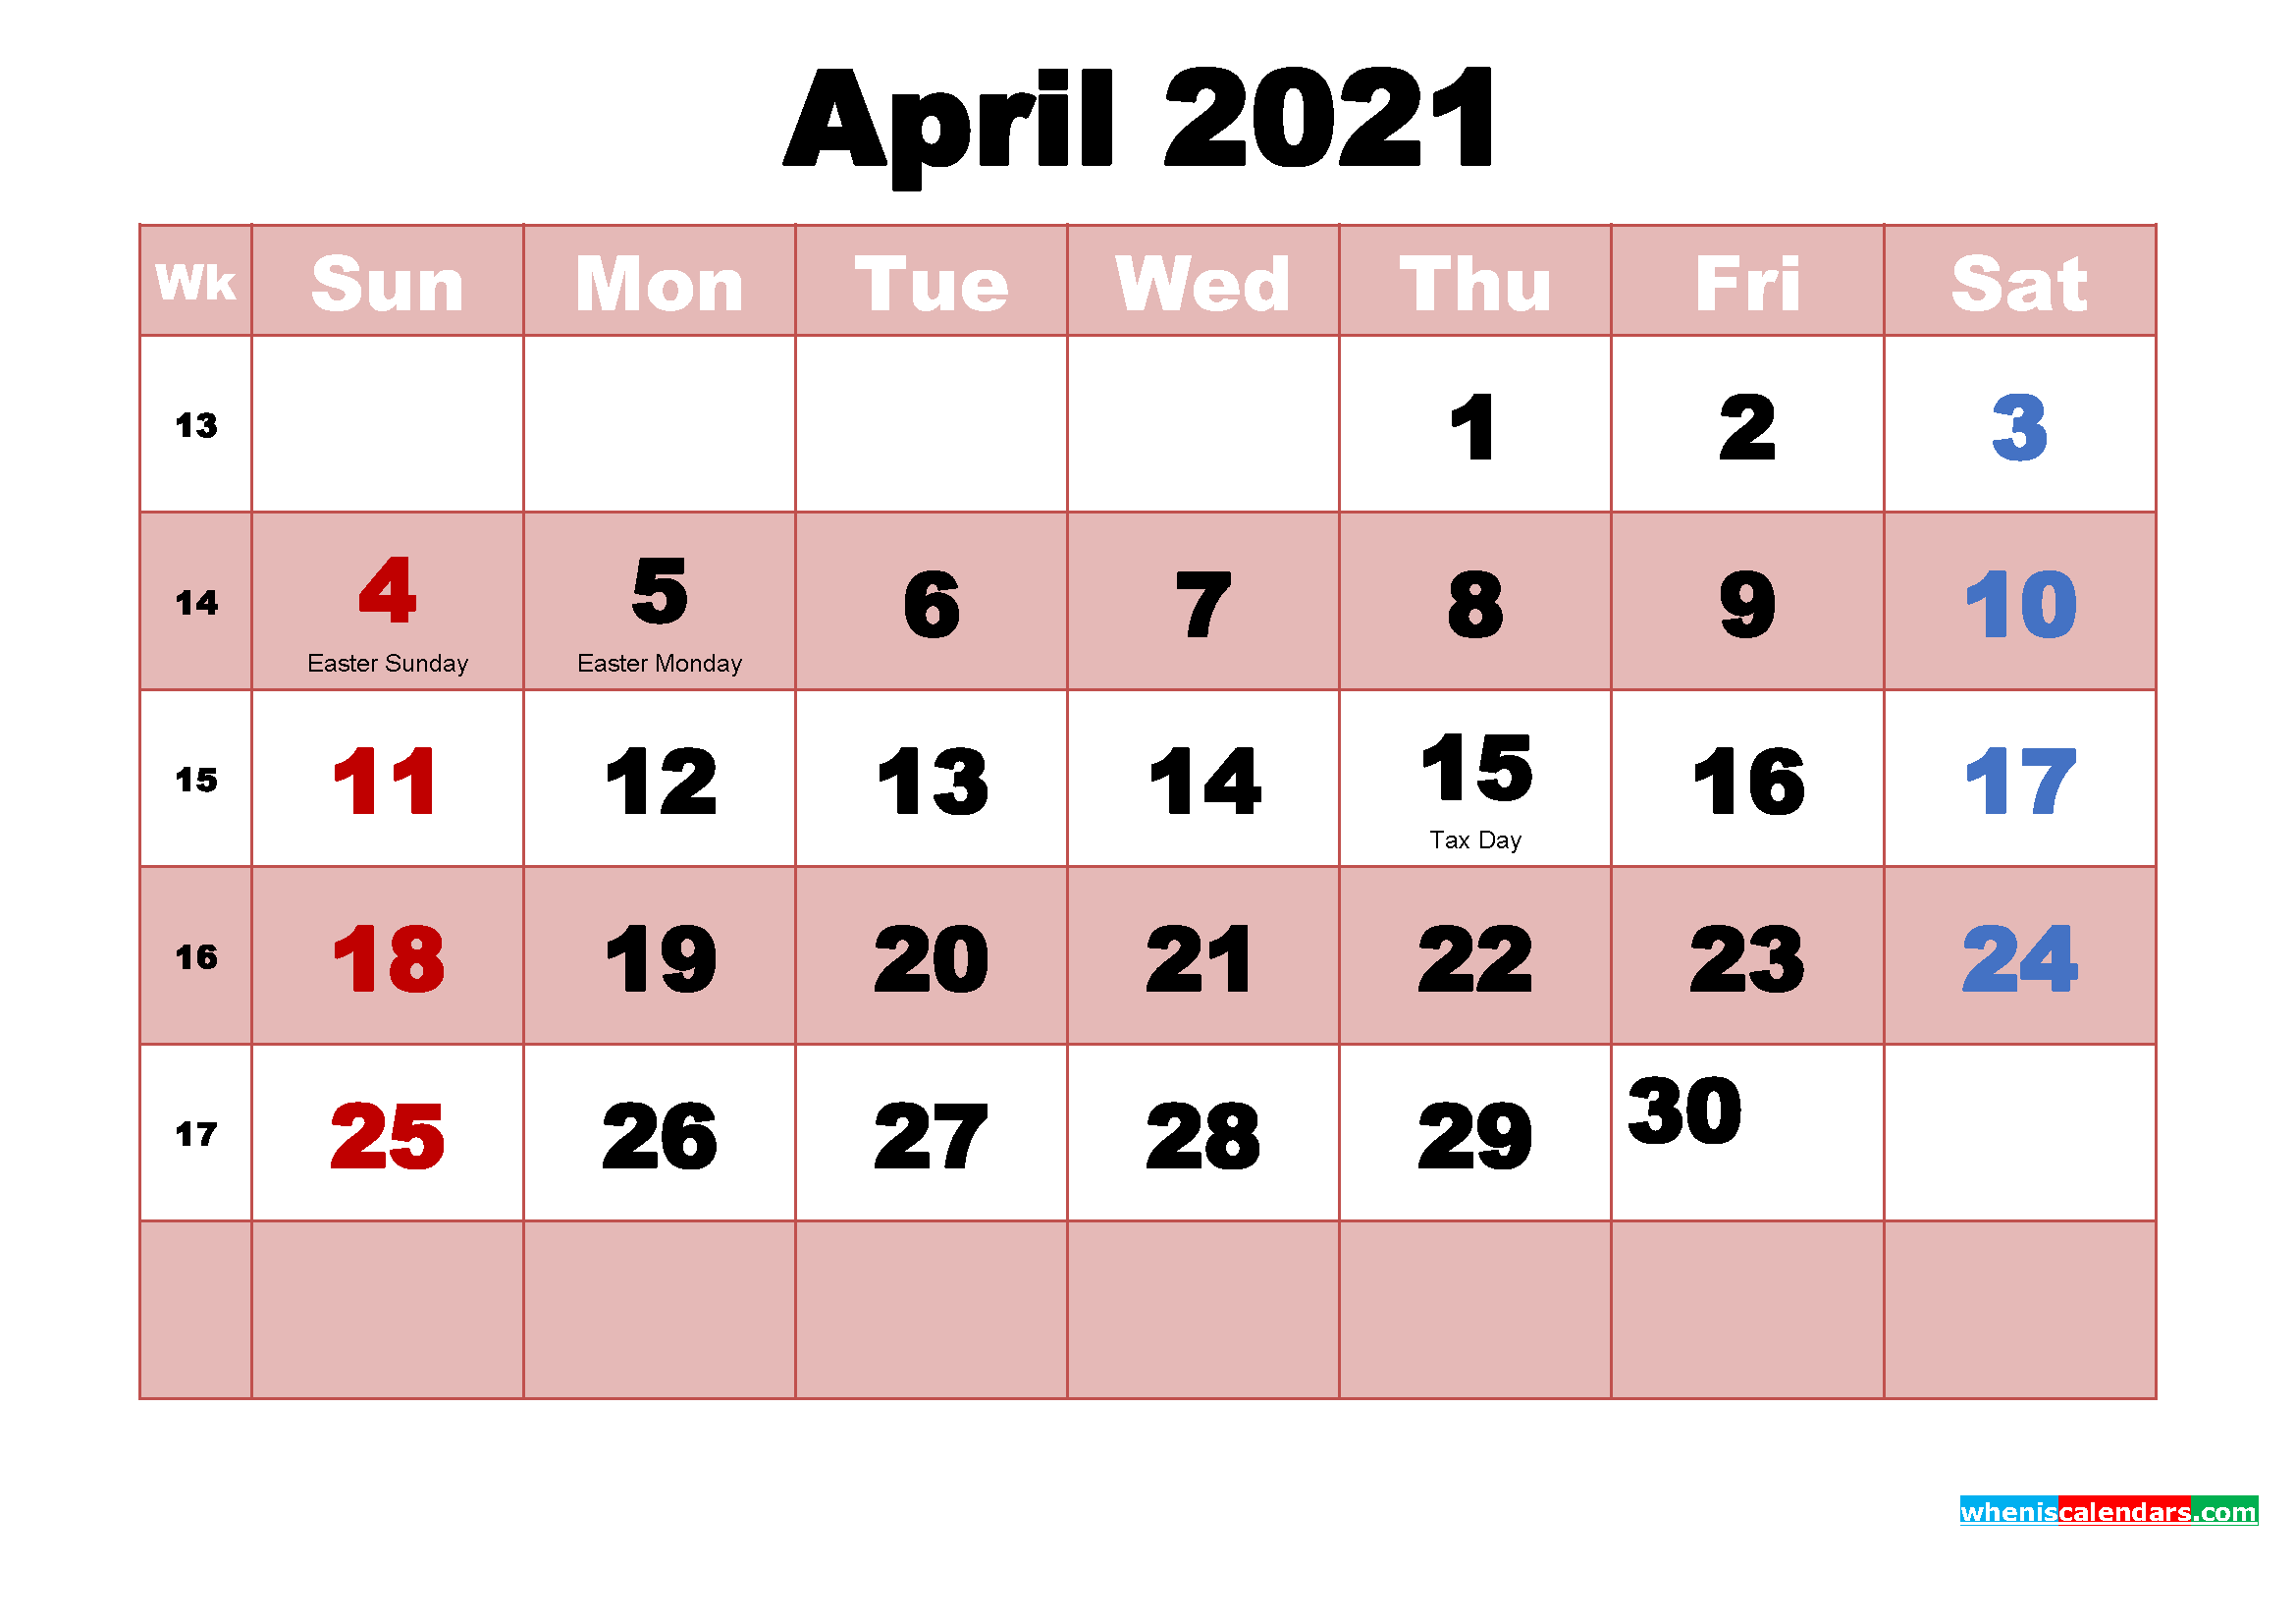 April 2021 Calendar with Holidays Wallpaper